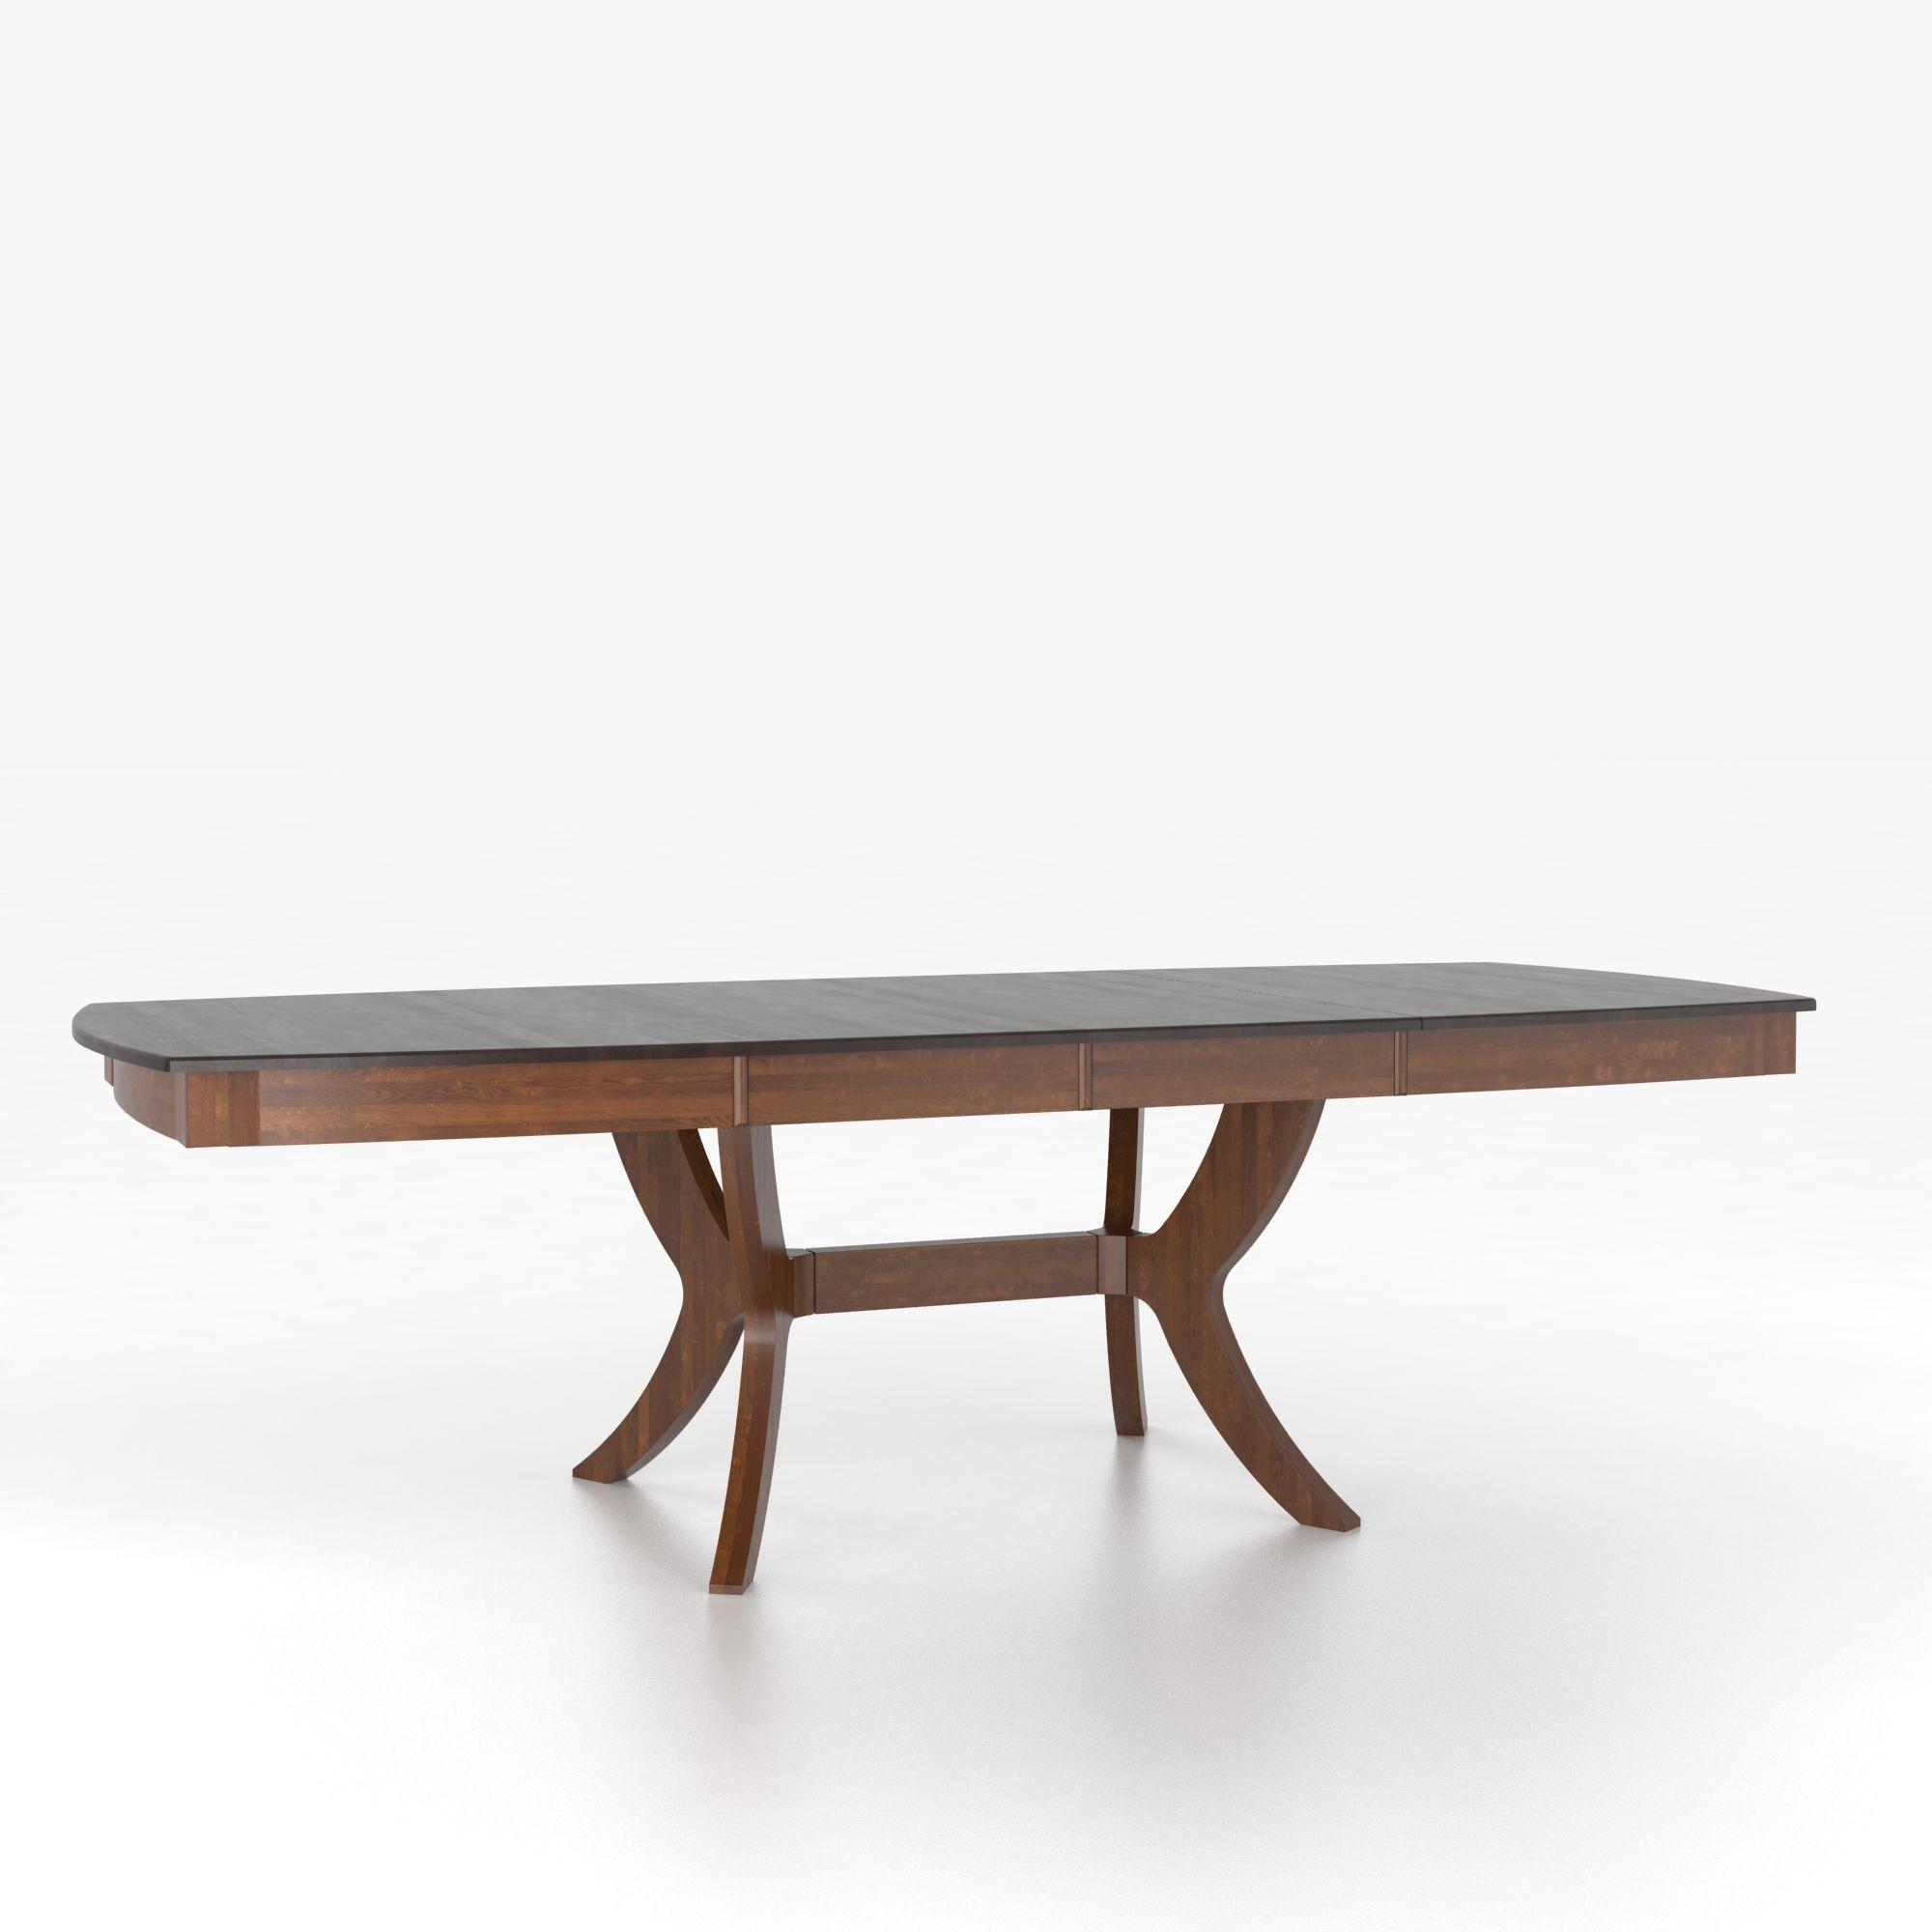 Custom Dining Tables Customizable Boat Shape Table with Pedestal by Canadel at Dinette Depot